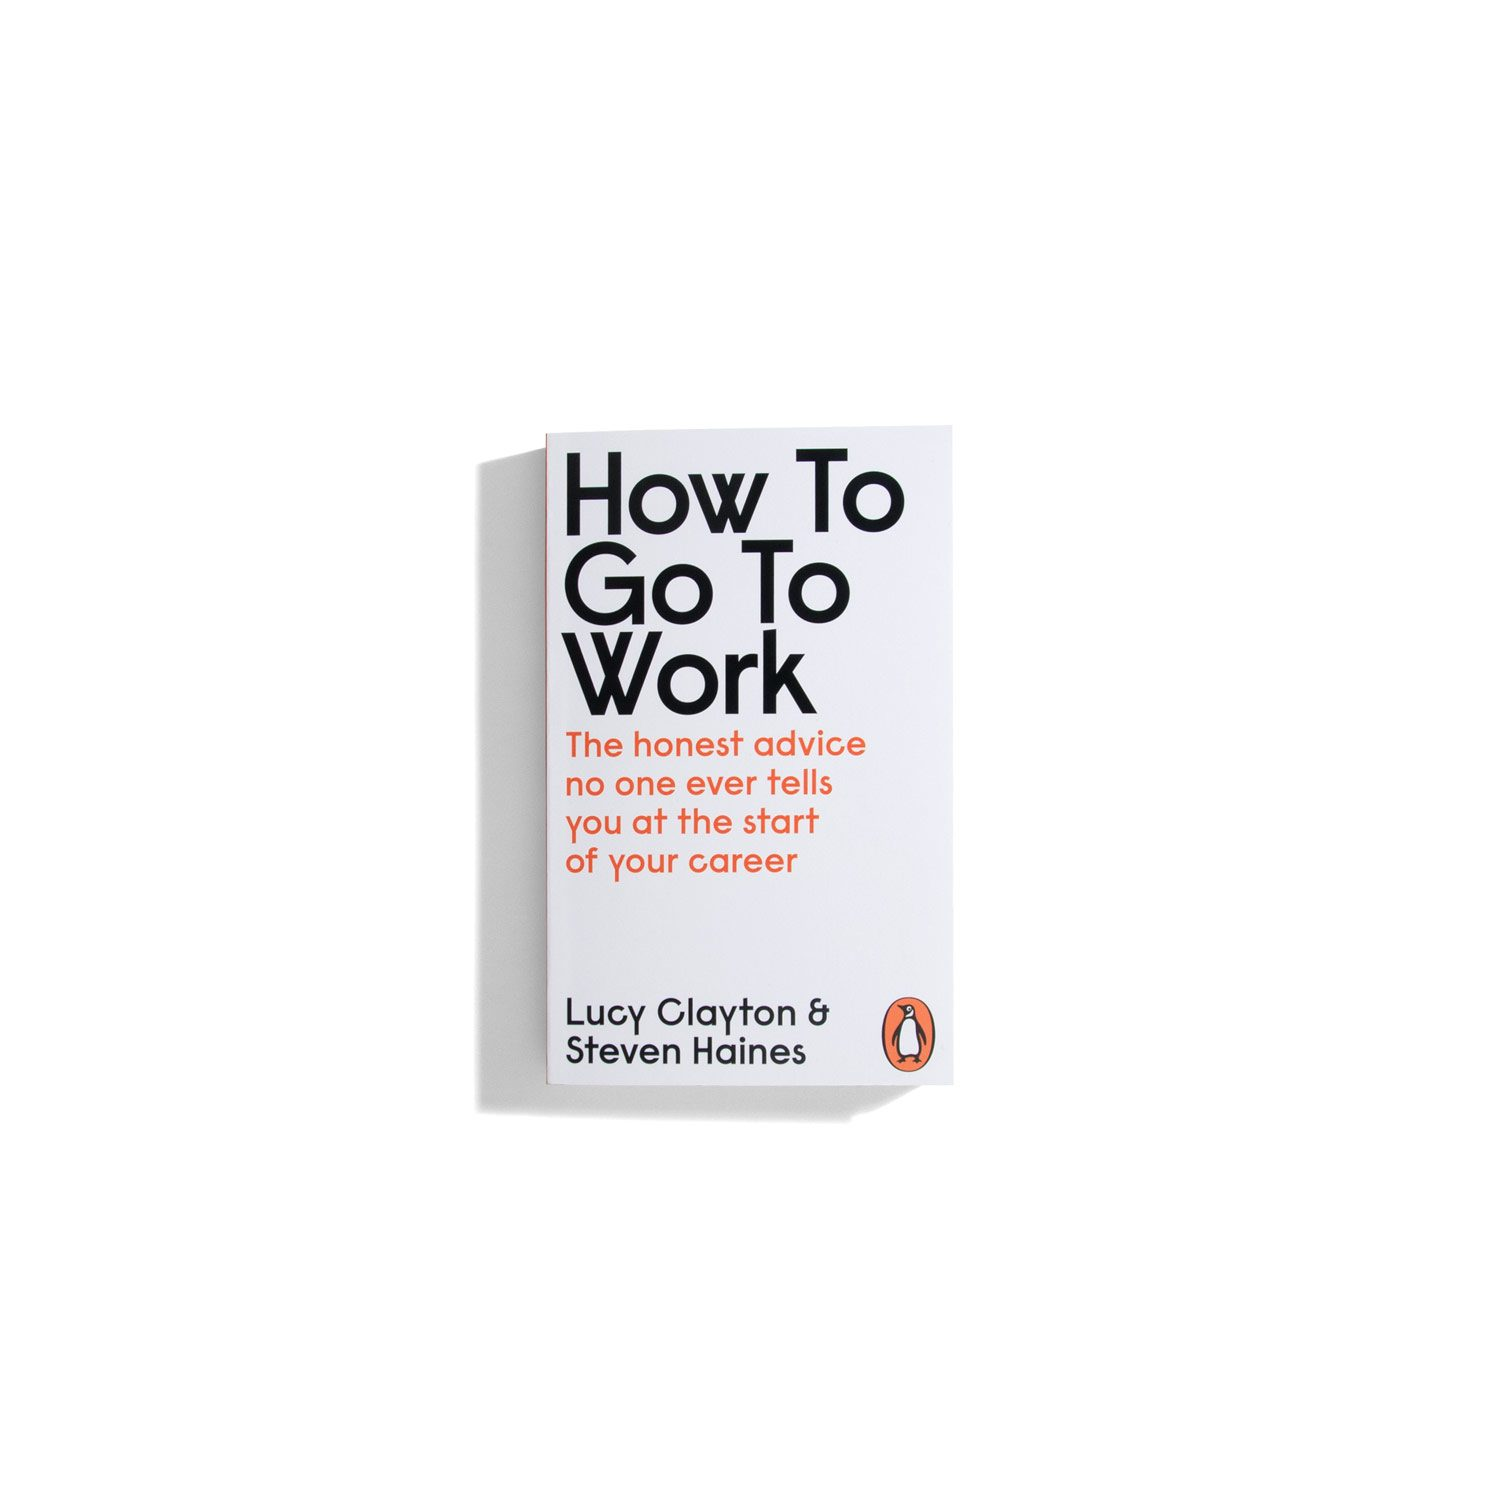 How to go to work - Lucy Clayton